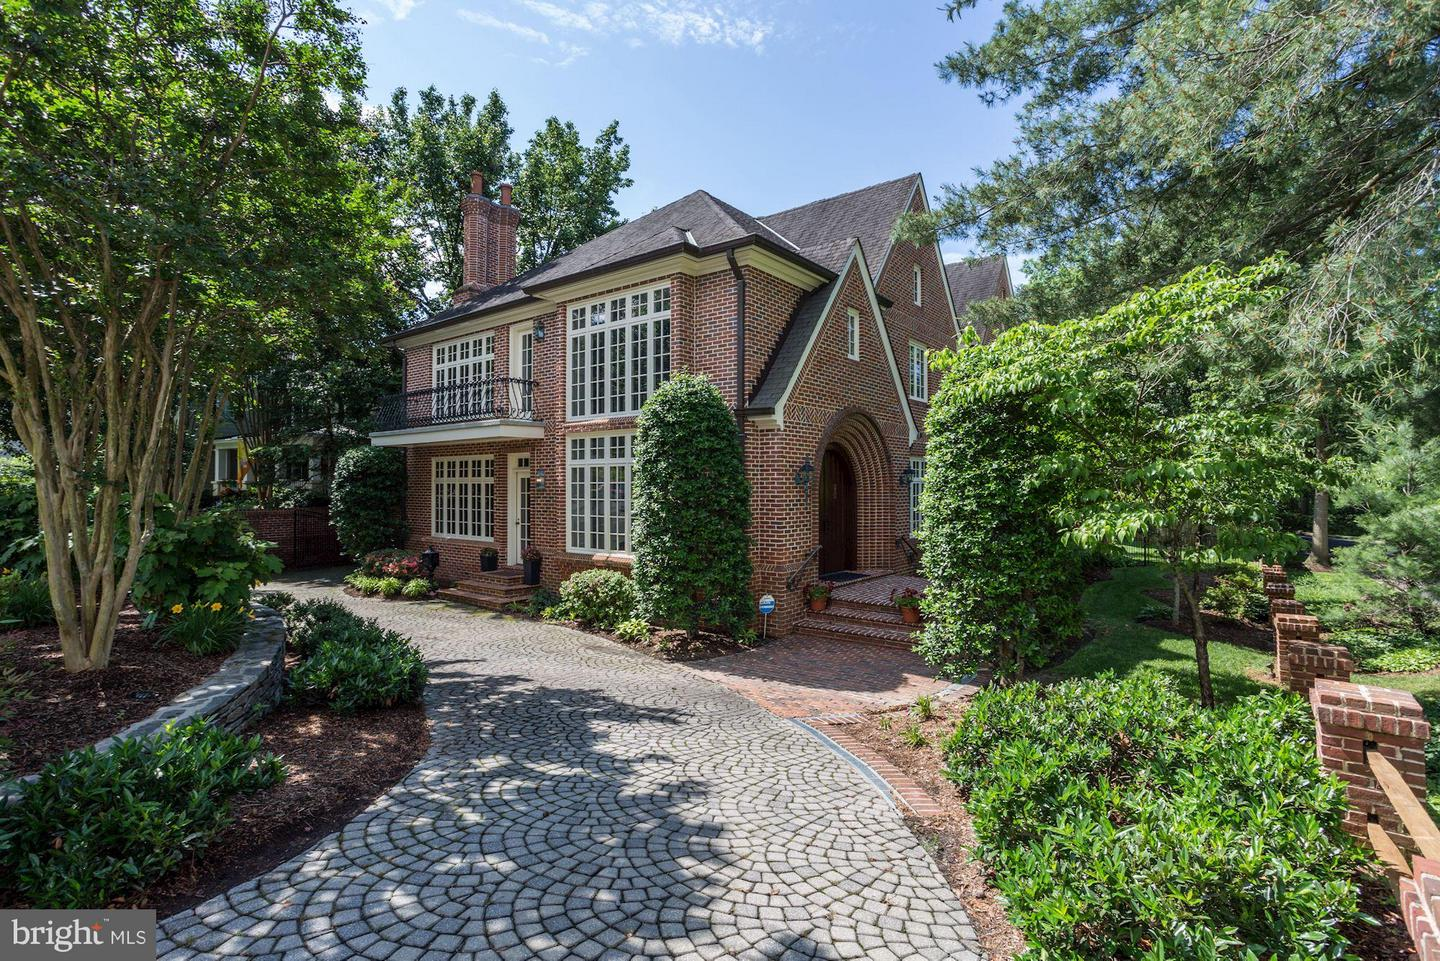 Single Family Home for Sale at 3818 Stafford St N 3818 Stafford St N Arlington, Virginia 22207 United States